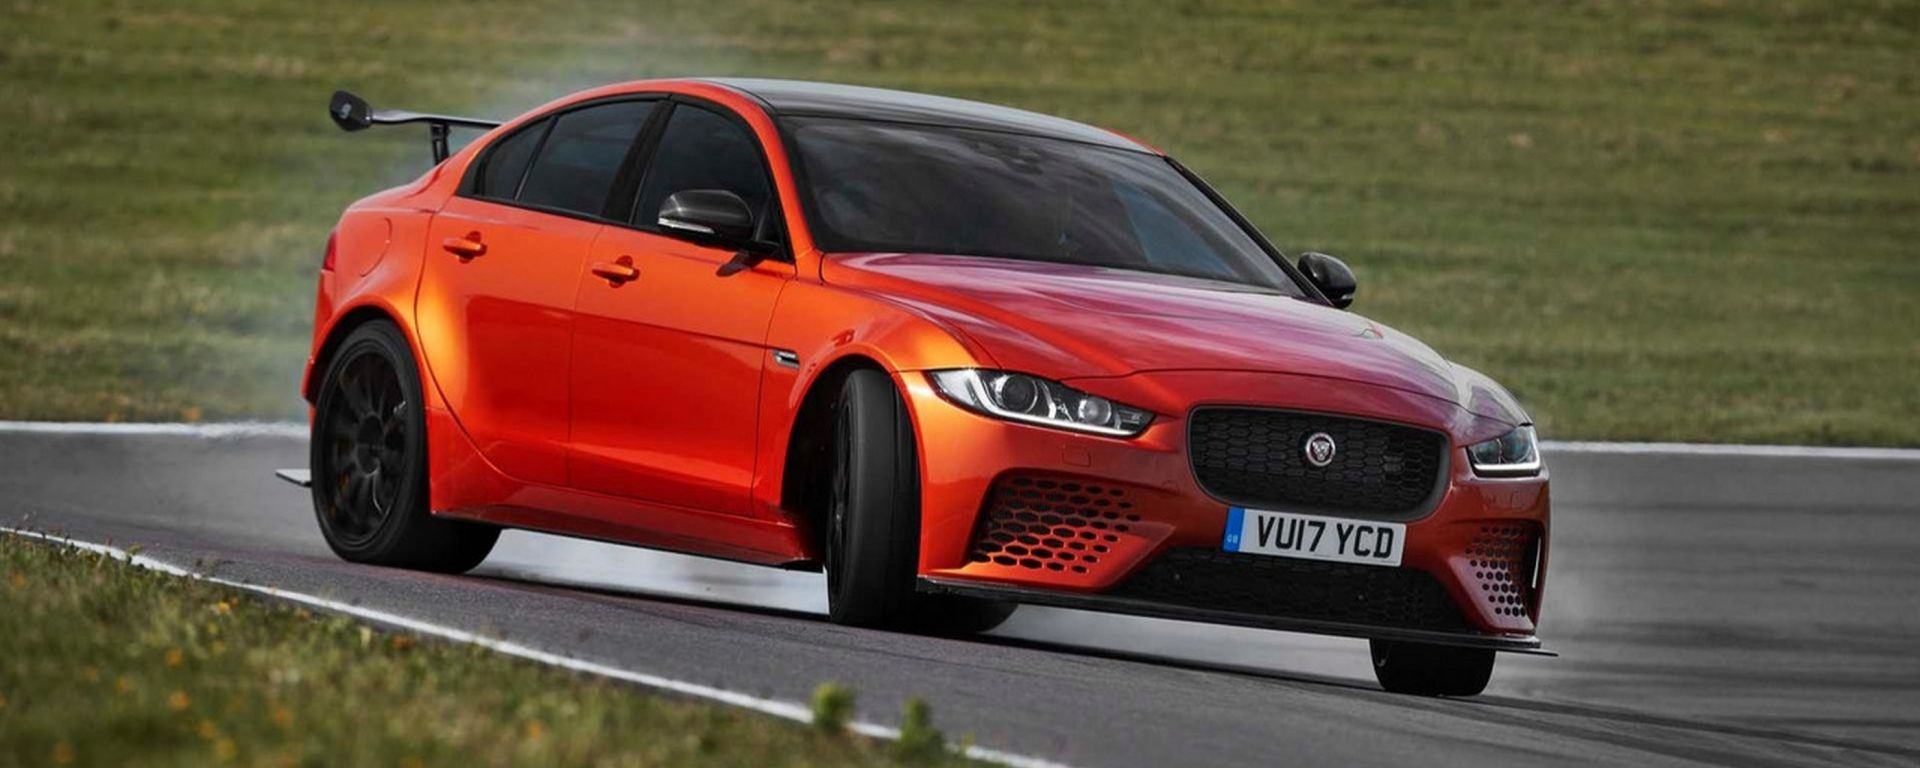 Jaguar XE SV Project 8: a Goodwood il giaguaro più potente